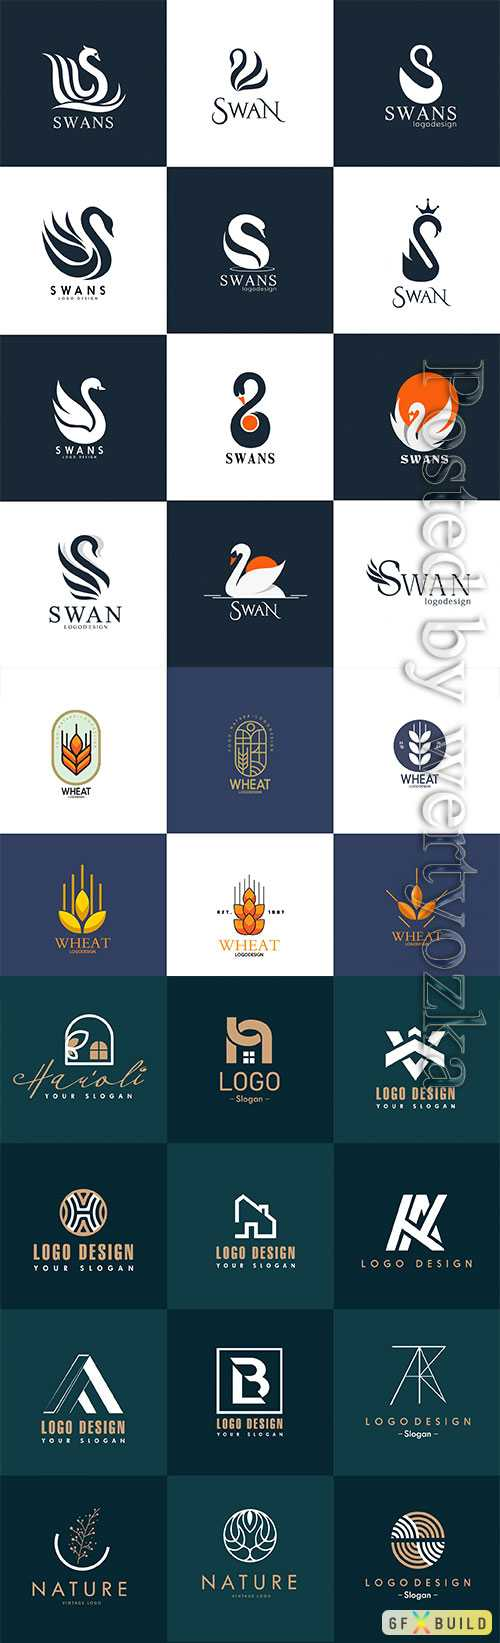 Set of different logos for business companies in vector